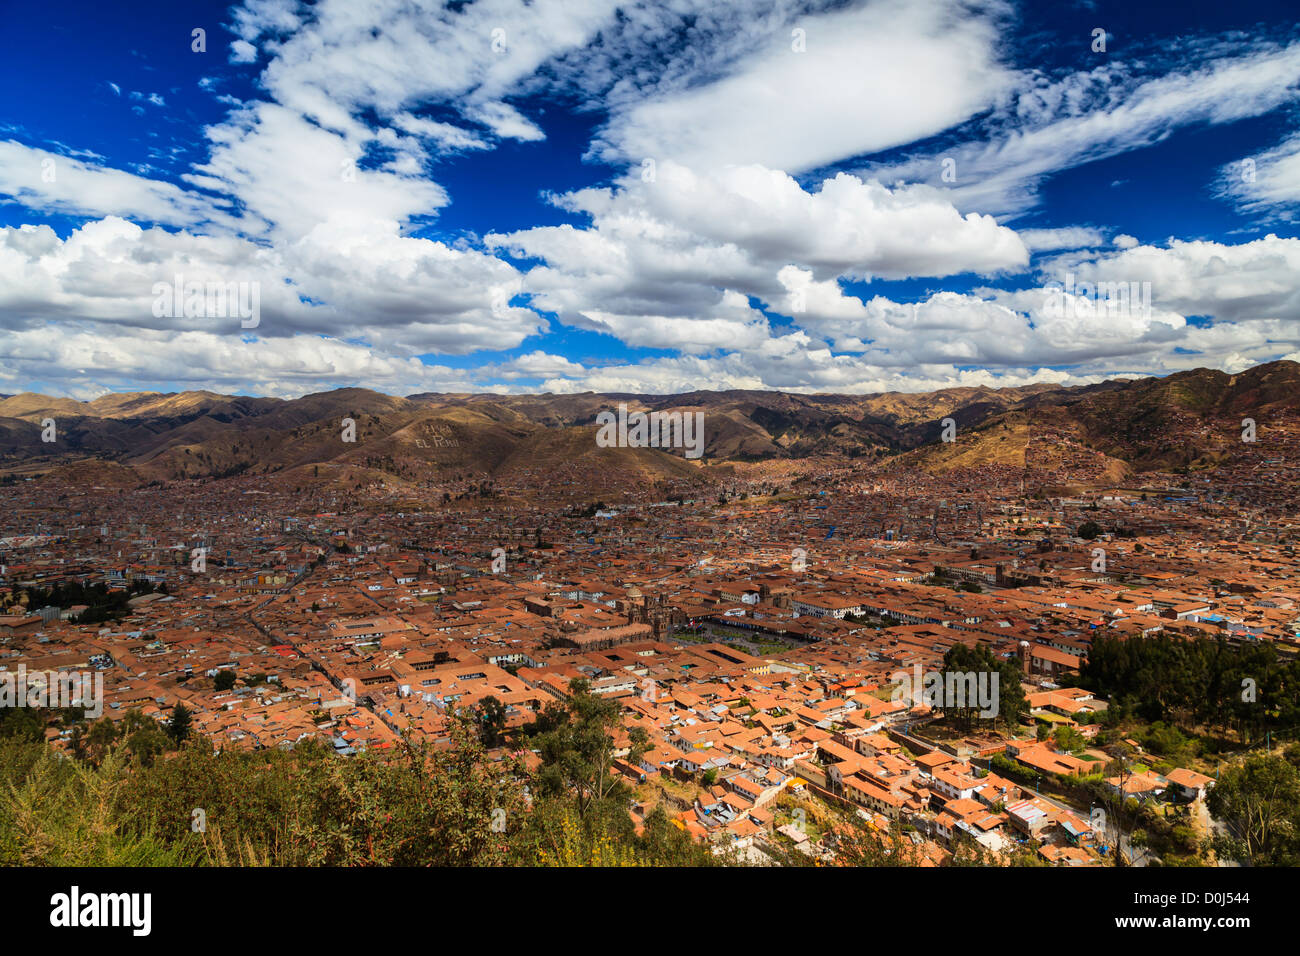 View of Cuzco from Sacsayhuaman viewpoint. Plaza de Armas clearly visible. Cuzco, Peru - Stock Image